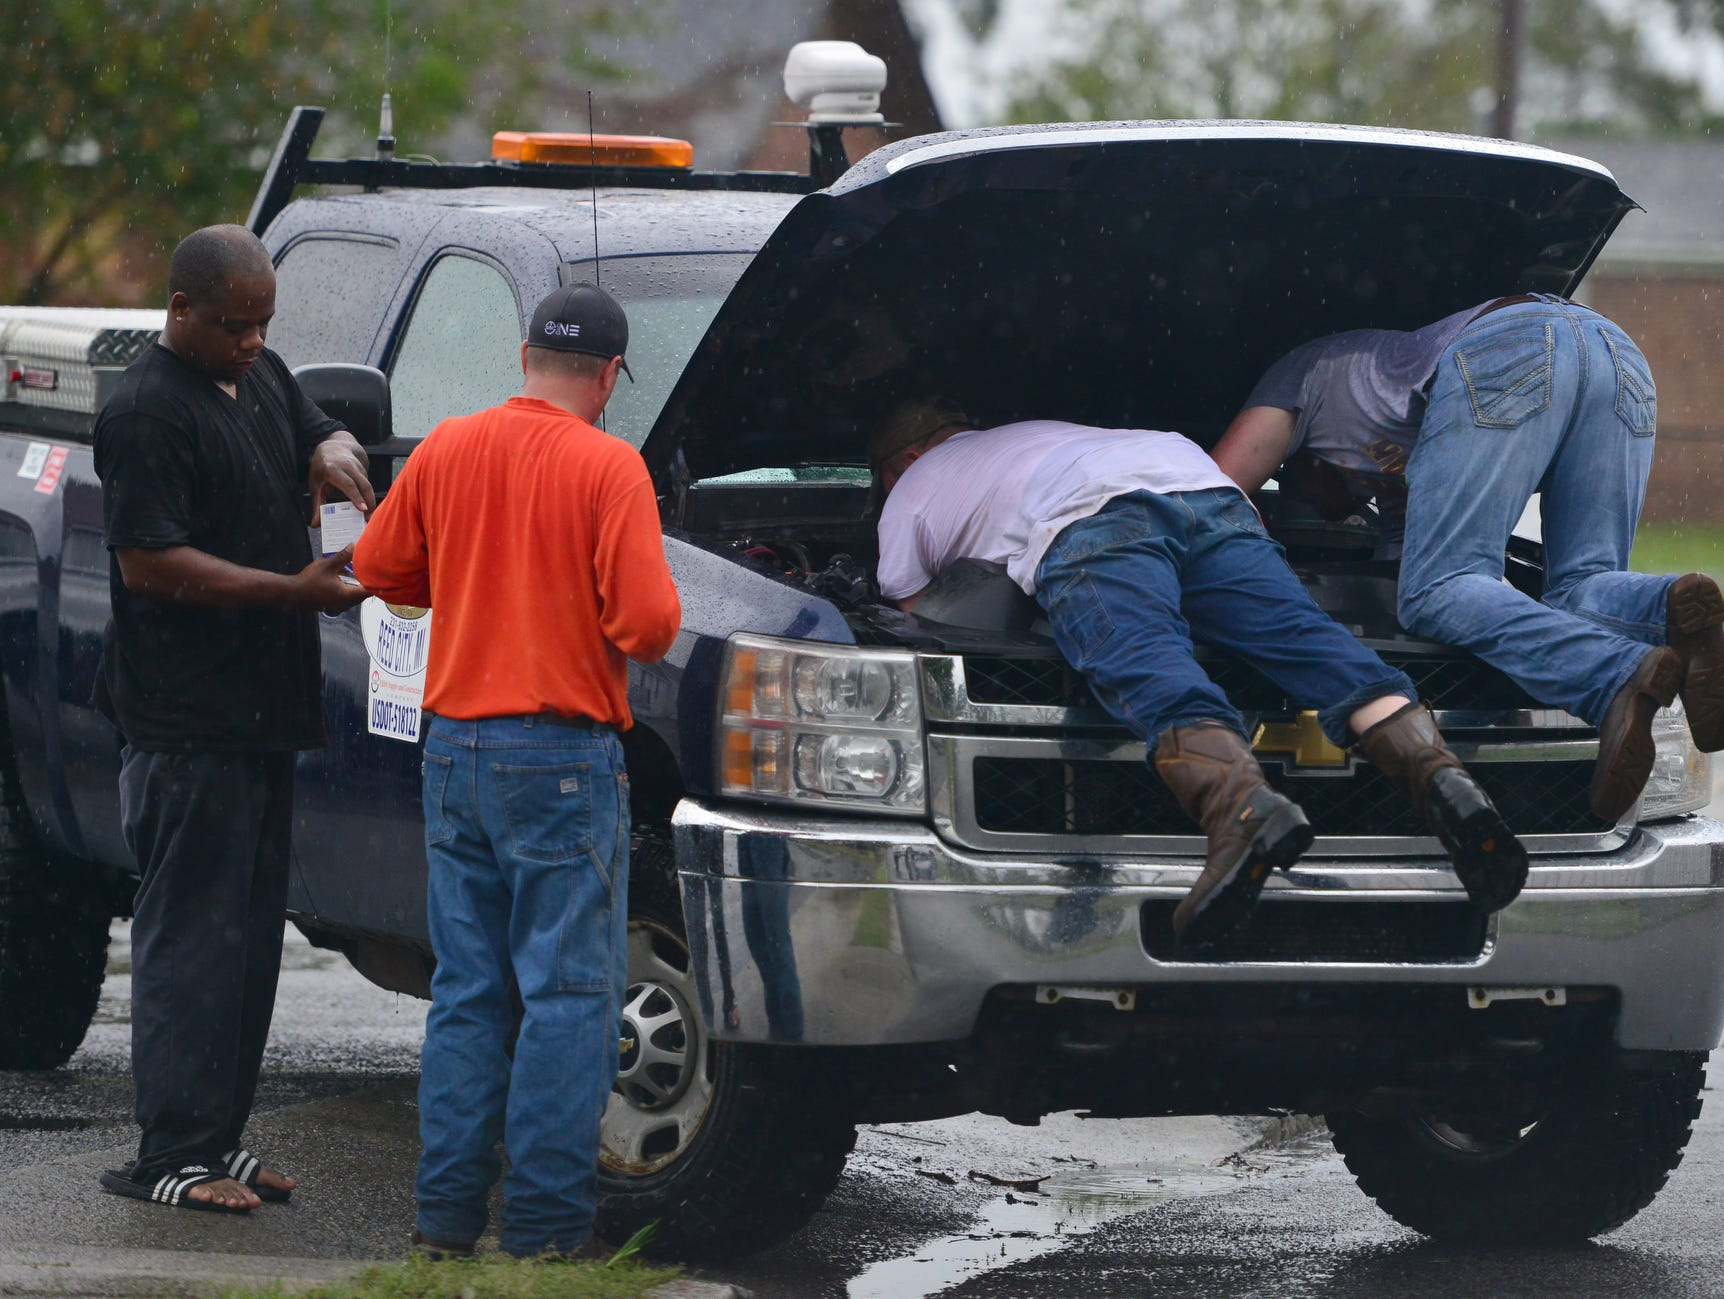 Workers try to fix their truck after driving through high water in Washington, N.C. on Friday afternoon.